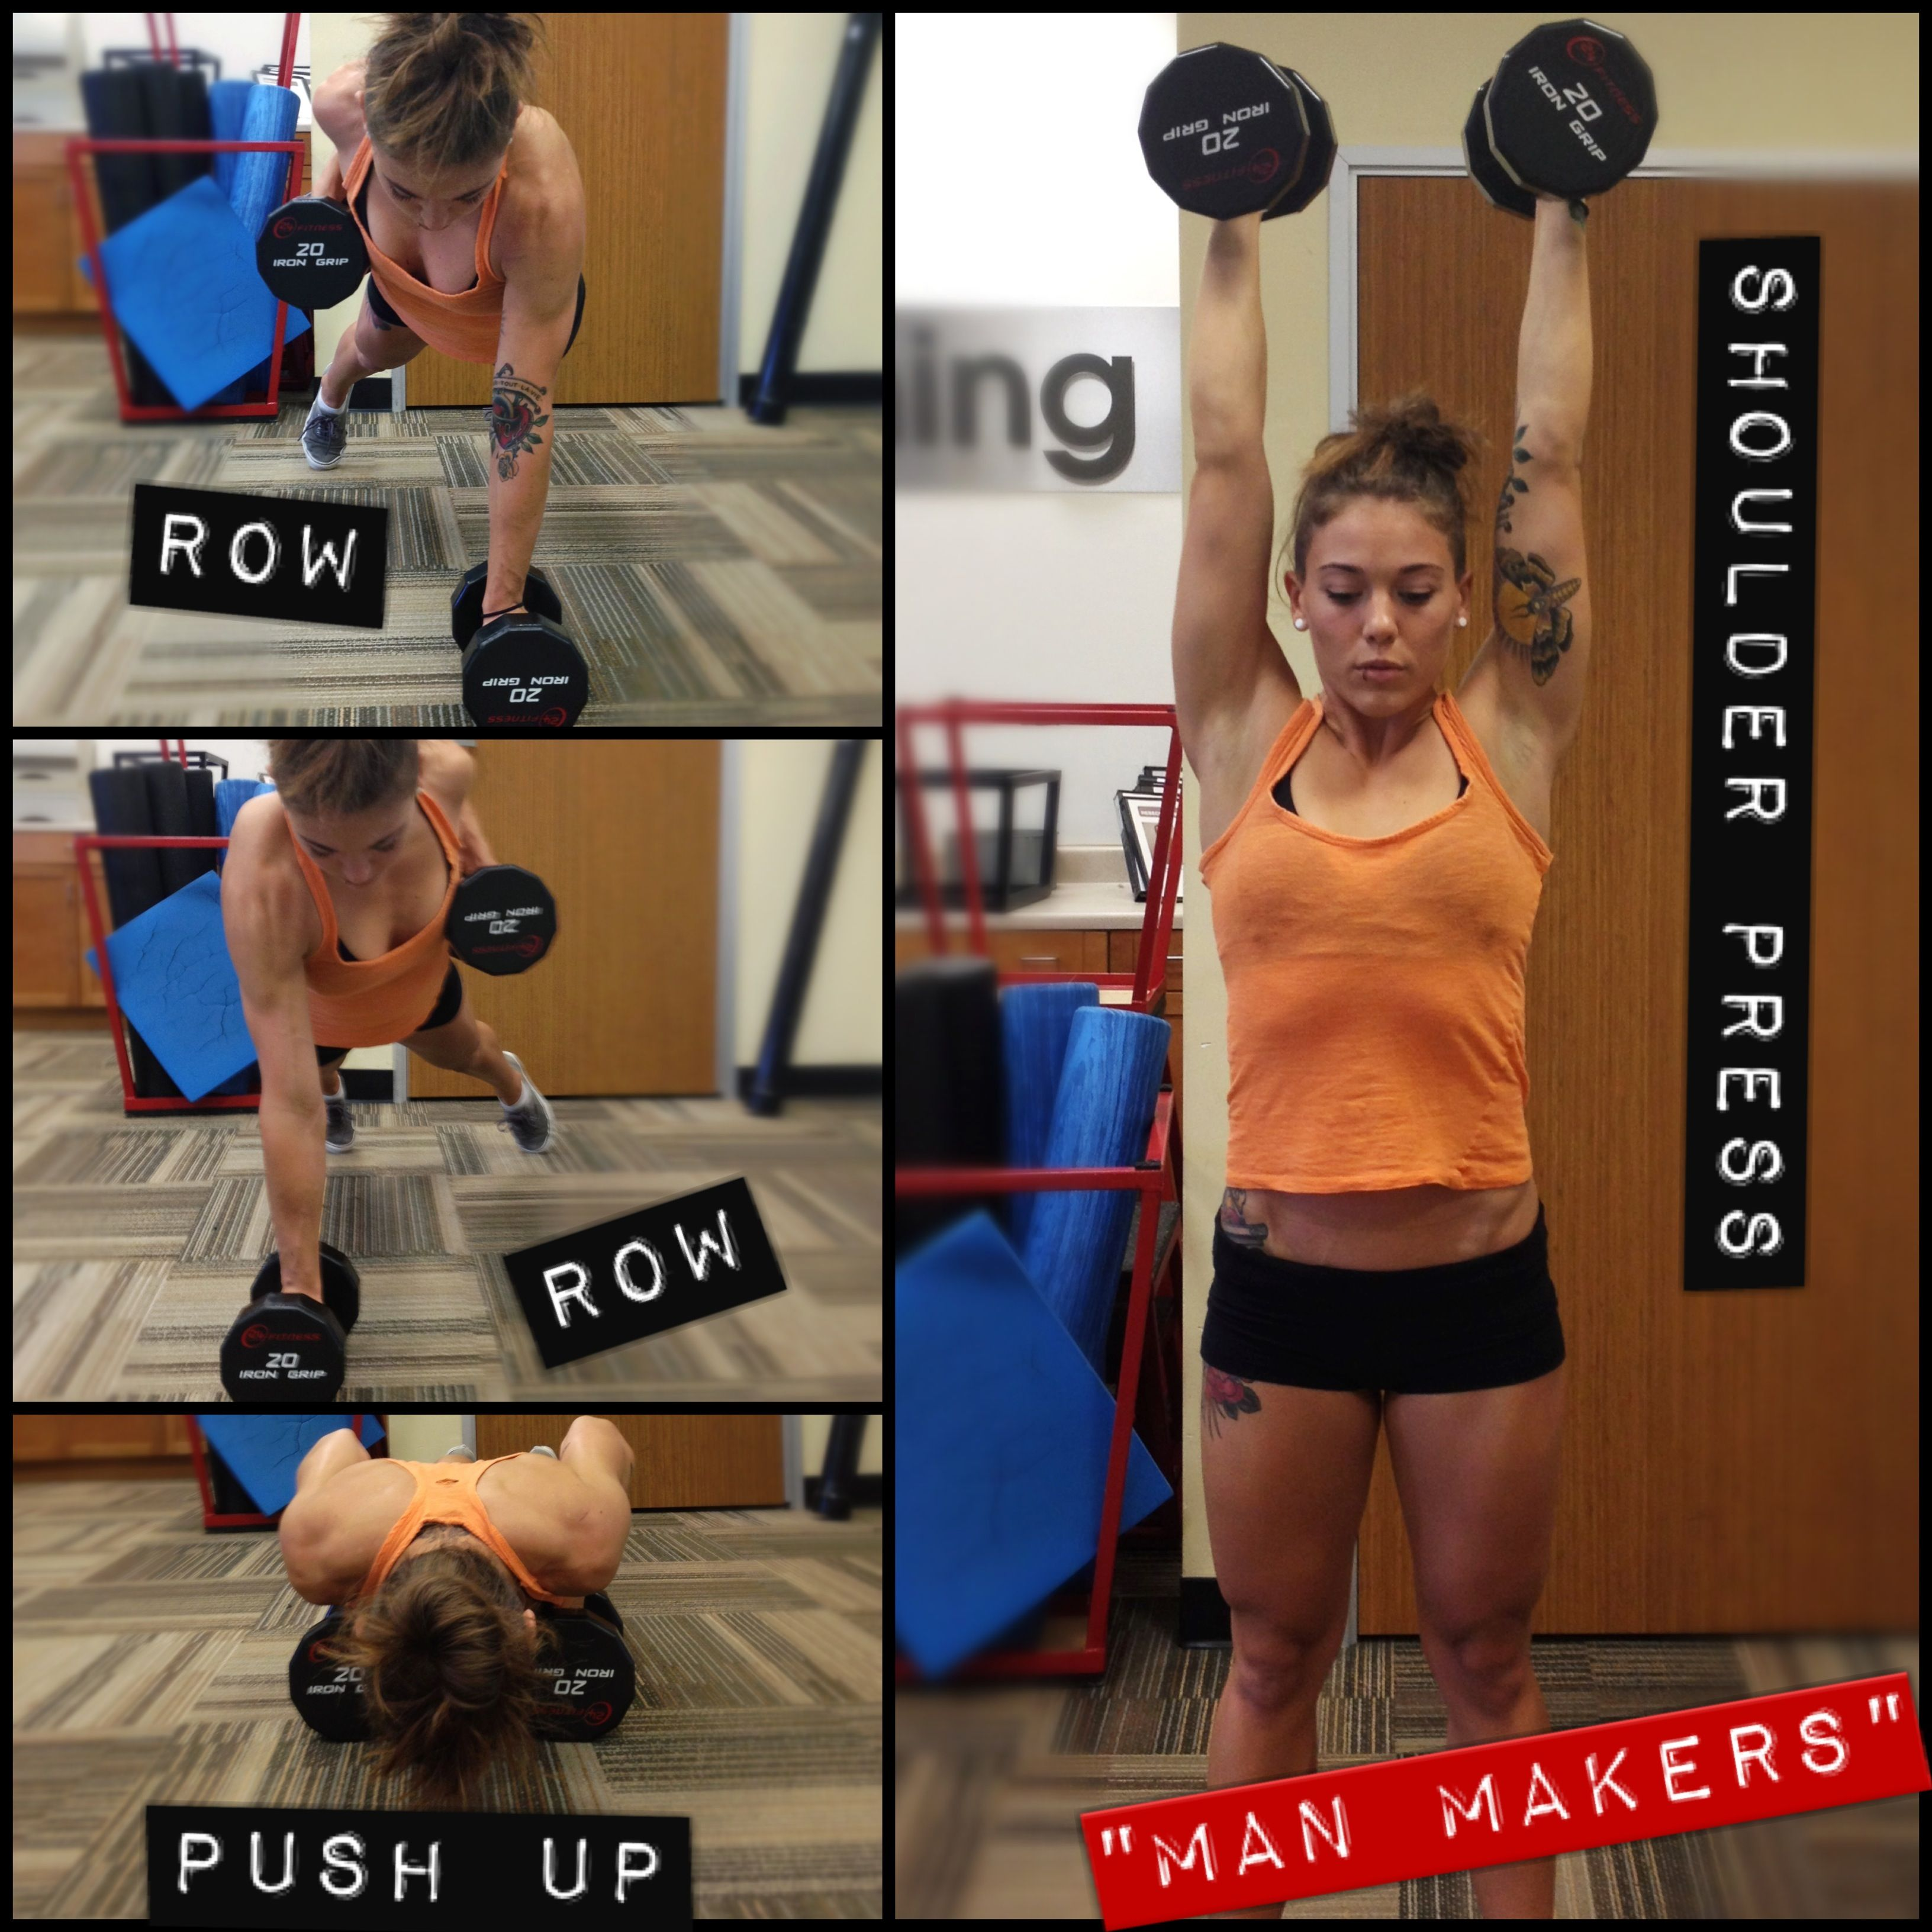 Man Makers: Start in plank position holding a dumbbell in each hand. Row your right arm up, pinching your shoulder blade back to bring the weight up to your chest and sending your elbow straight up. Return the weight to the ground then row on the opposite side. Next, perform a push-up. Then, jump your feet forward to meet your hands, stand up and press the weights overhead locking your arms out at the top. That's ONE rep! #petitefi #fitlikefi #workout